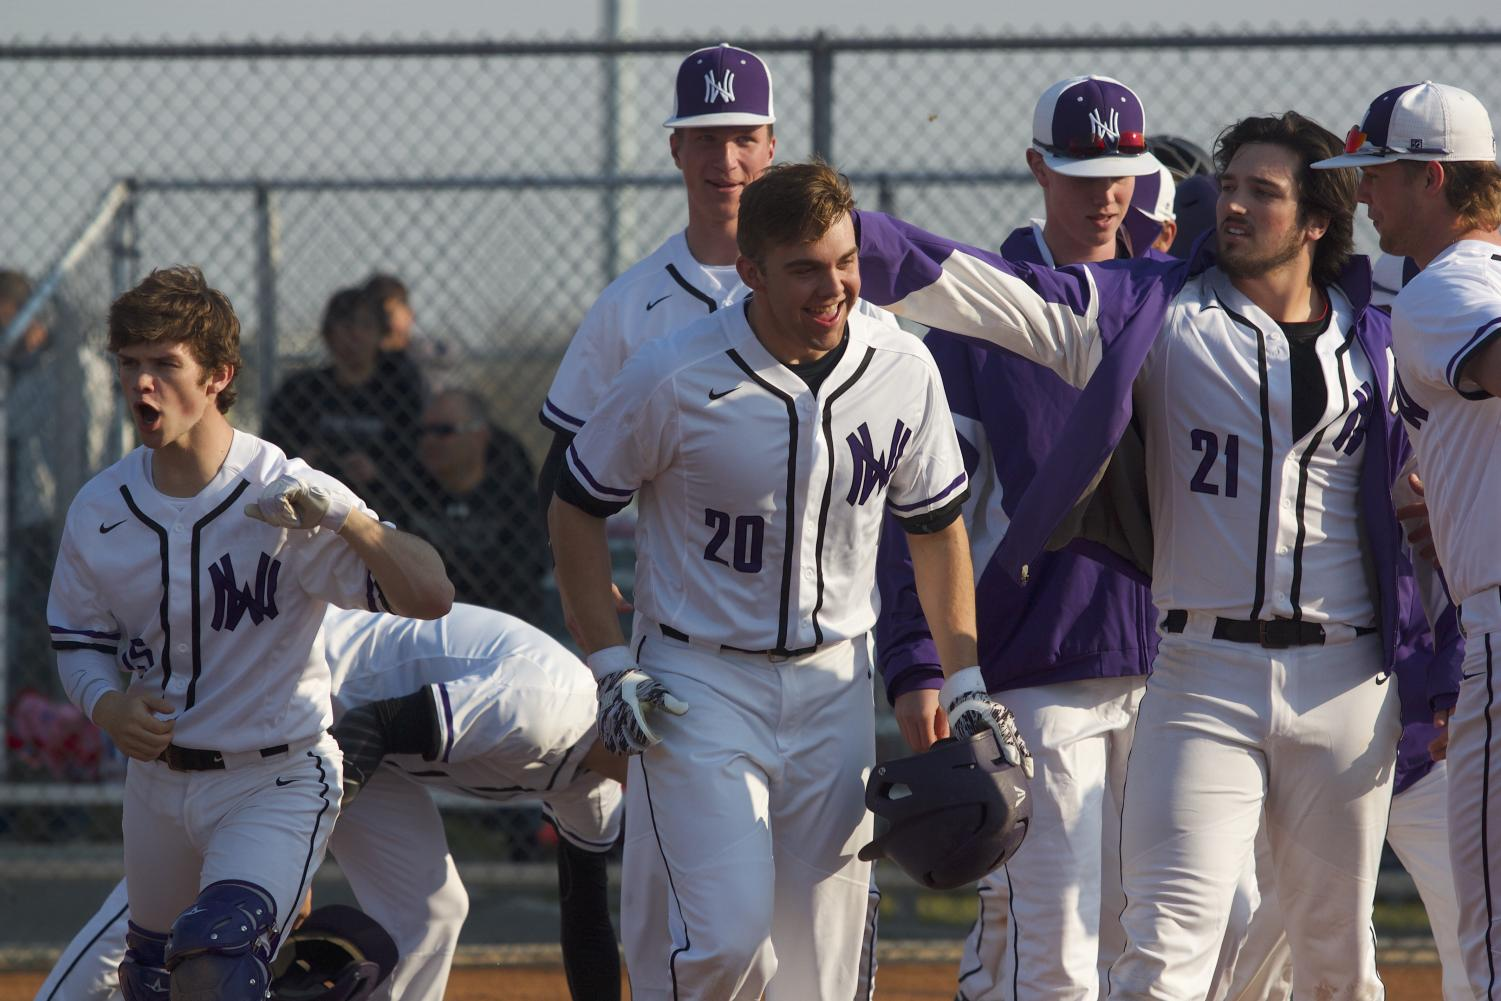 Members of the Huskies team celebrate junior Sean Roseborough's (20) third inning home run during the Huskies matchup with Blue Valley at BVHS April 10. The Huskies defeated the Tigers, 15-10.